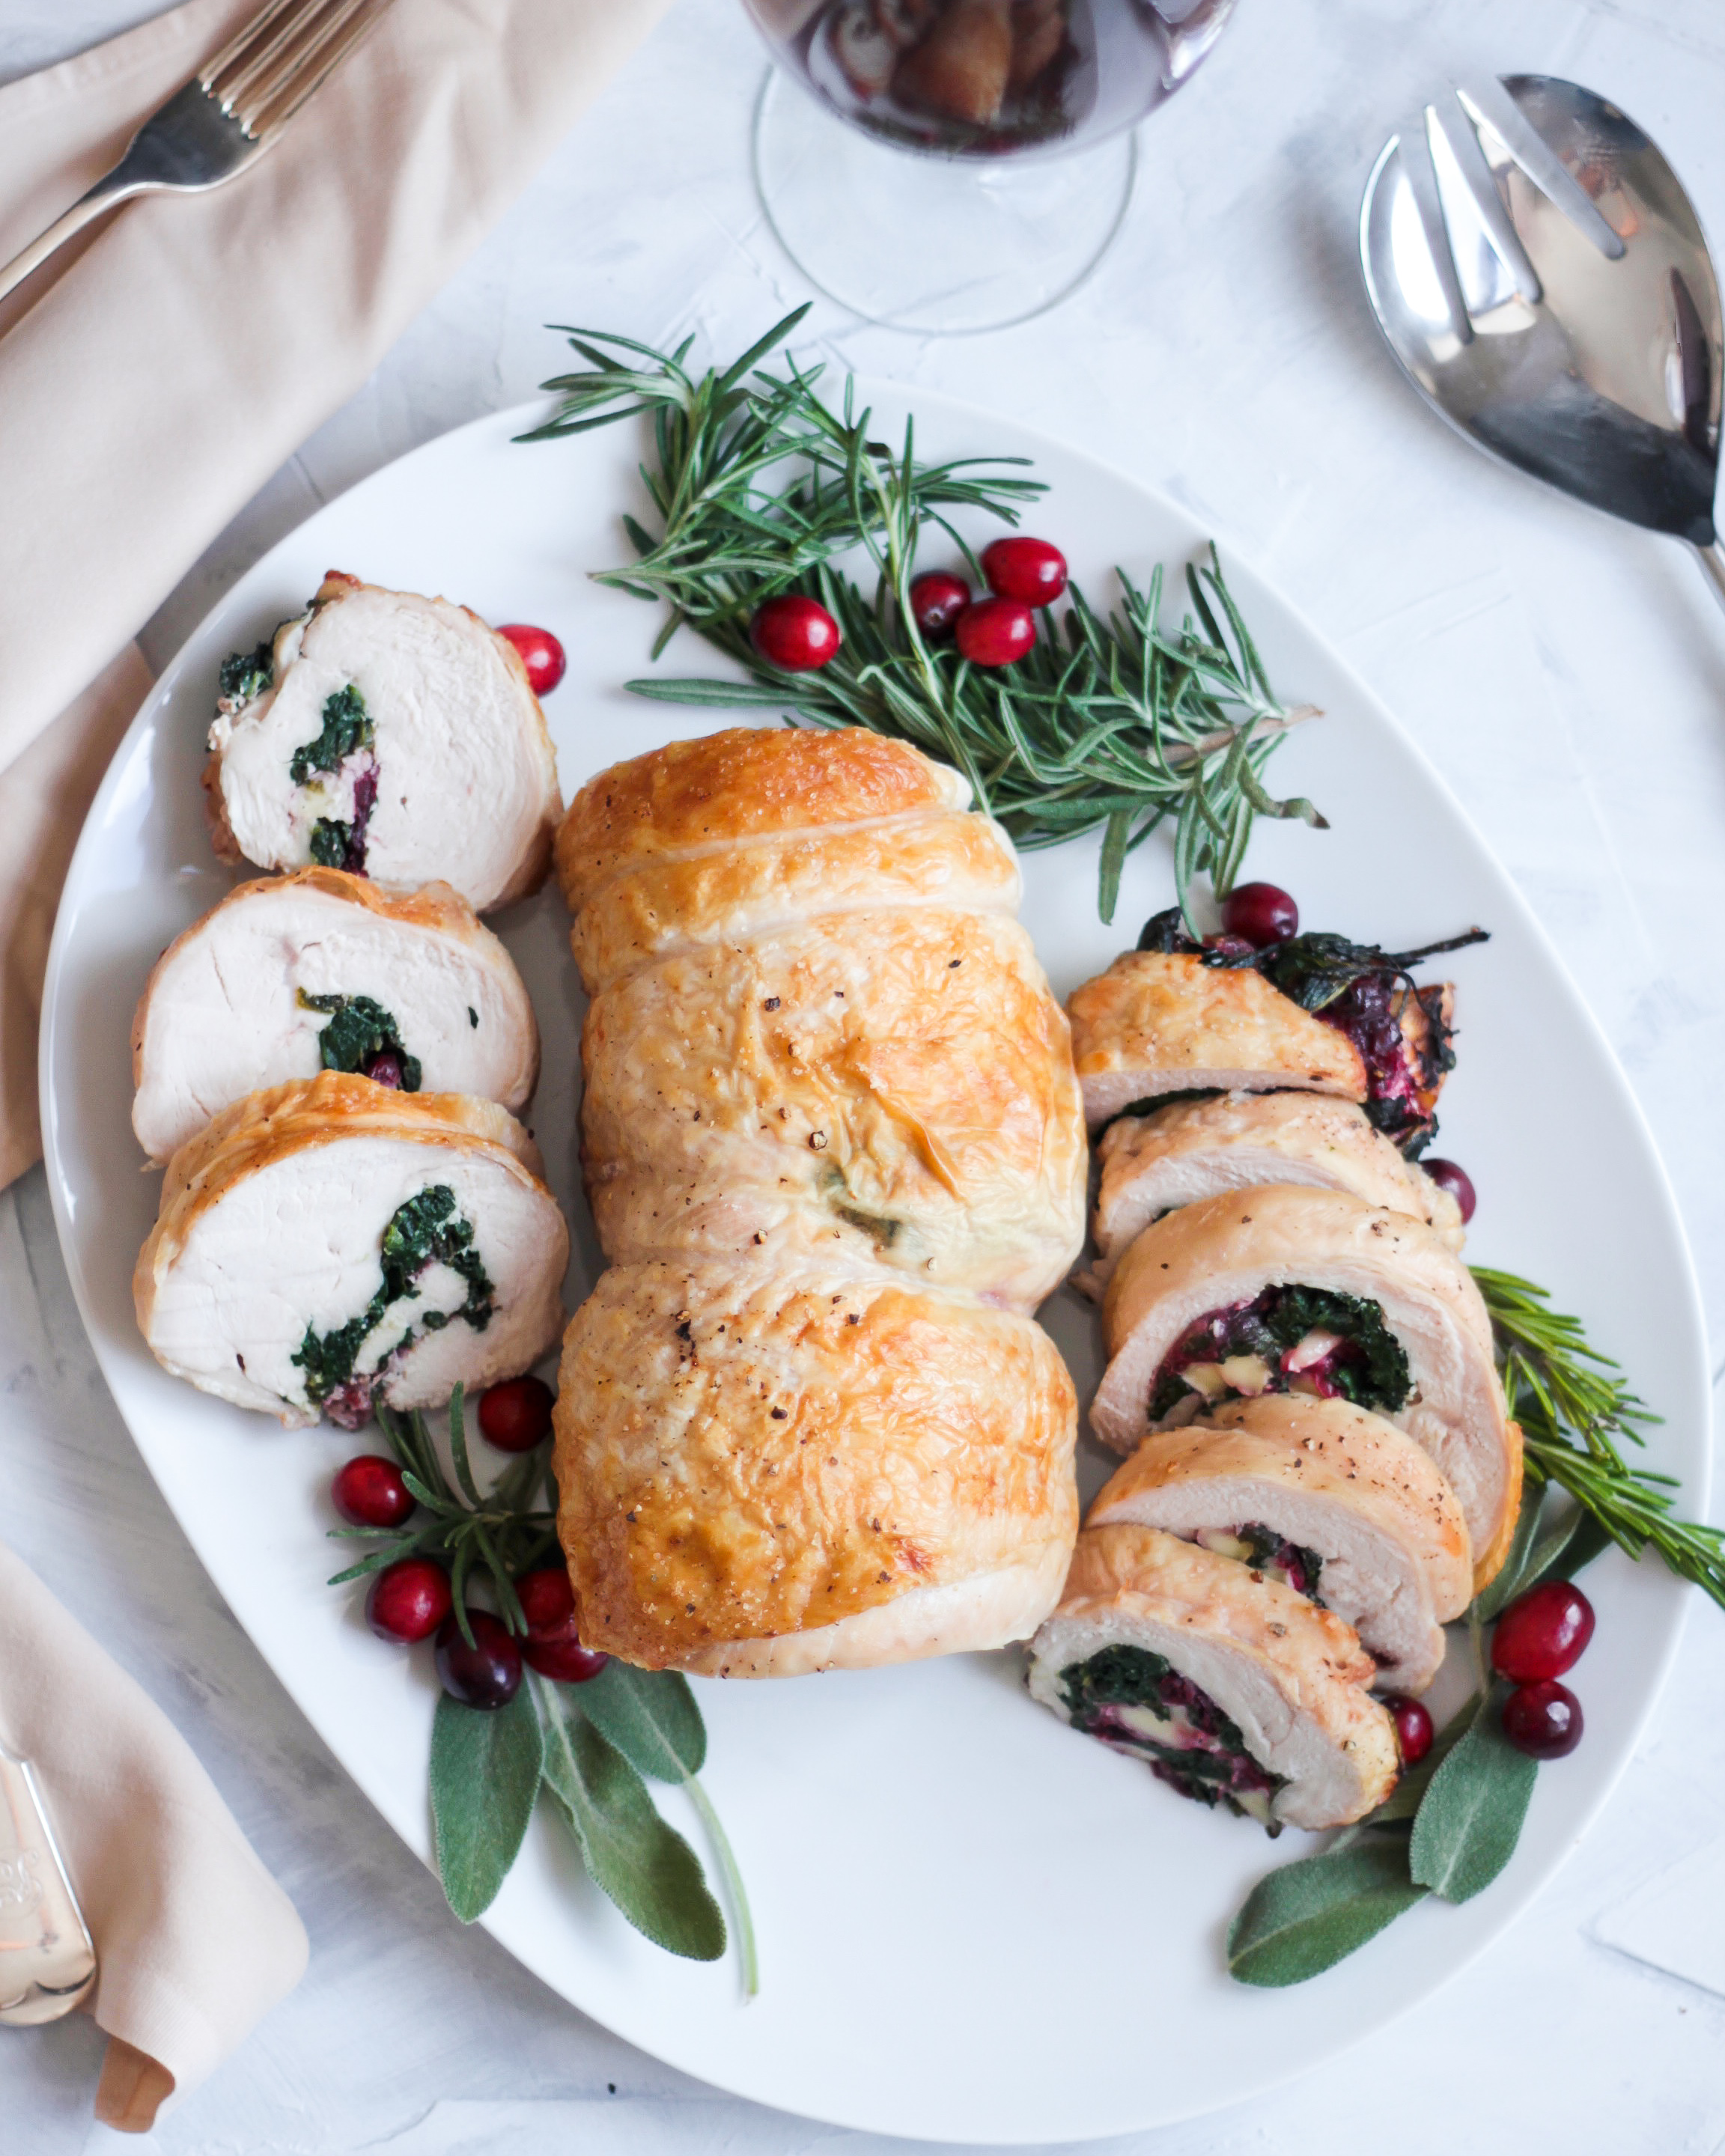 Cranberry Brie Stuffed Turkey Roulade A Taste Of Wellbeing